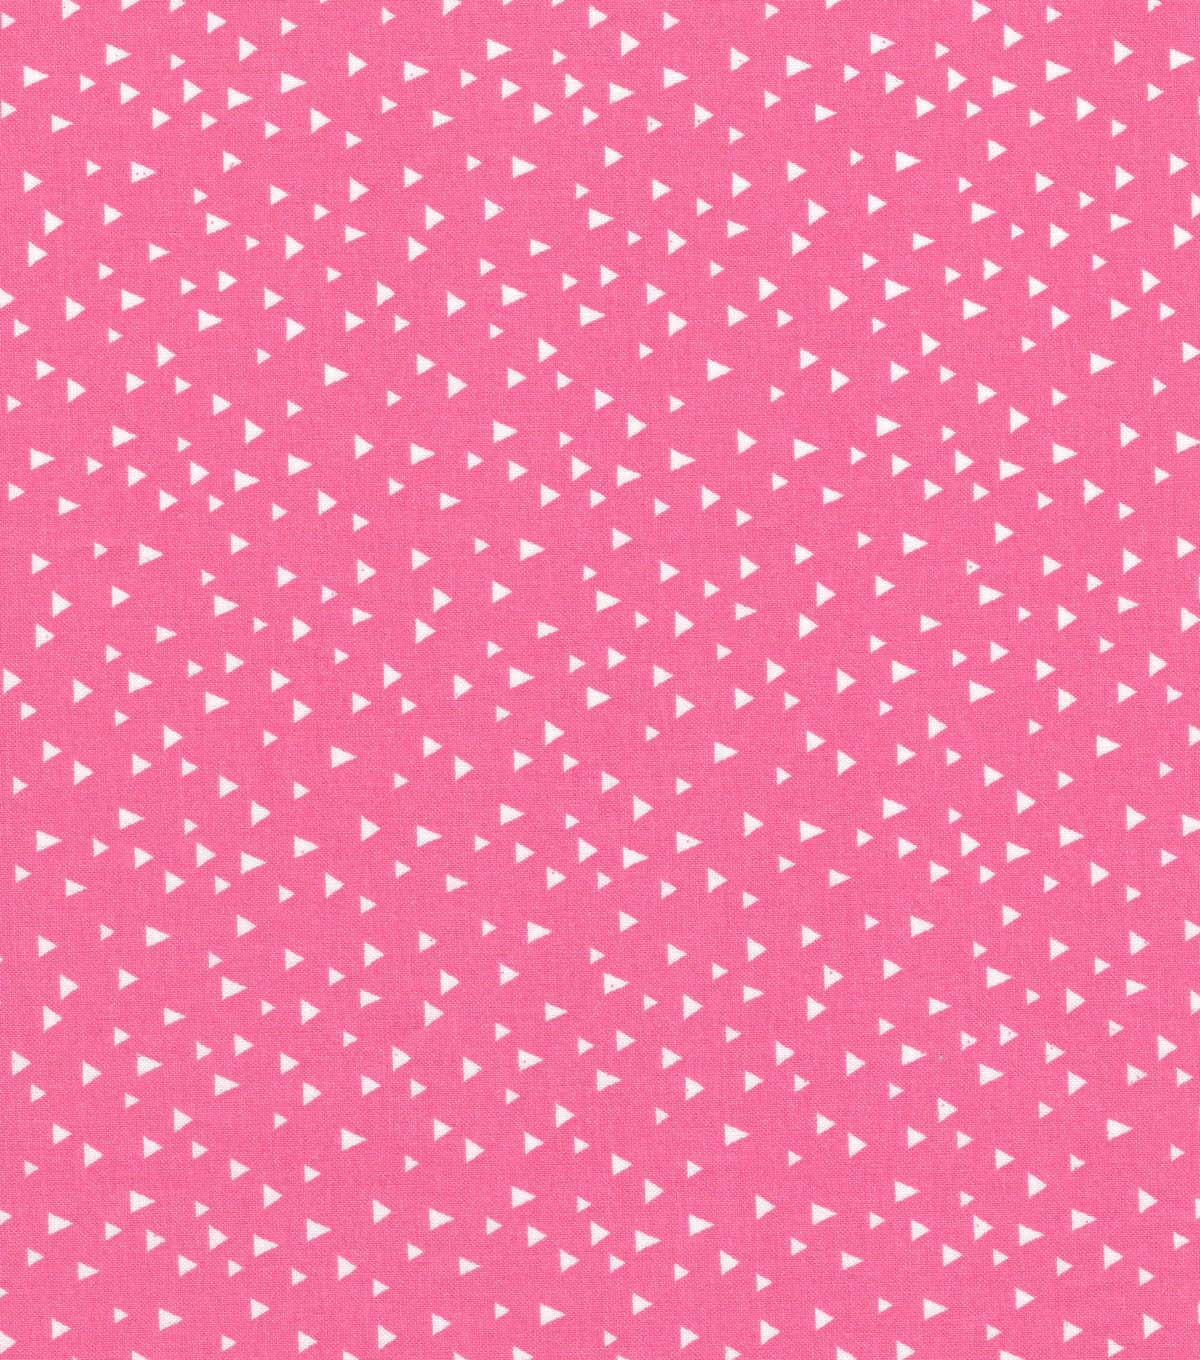 Quilter\u0027s Showcase Cotton Fabric 44\u0027\u0027-White Scattered Triangles on Pink